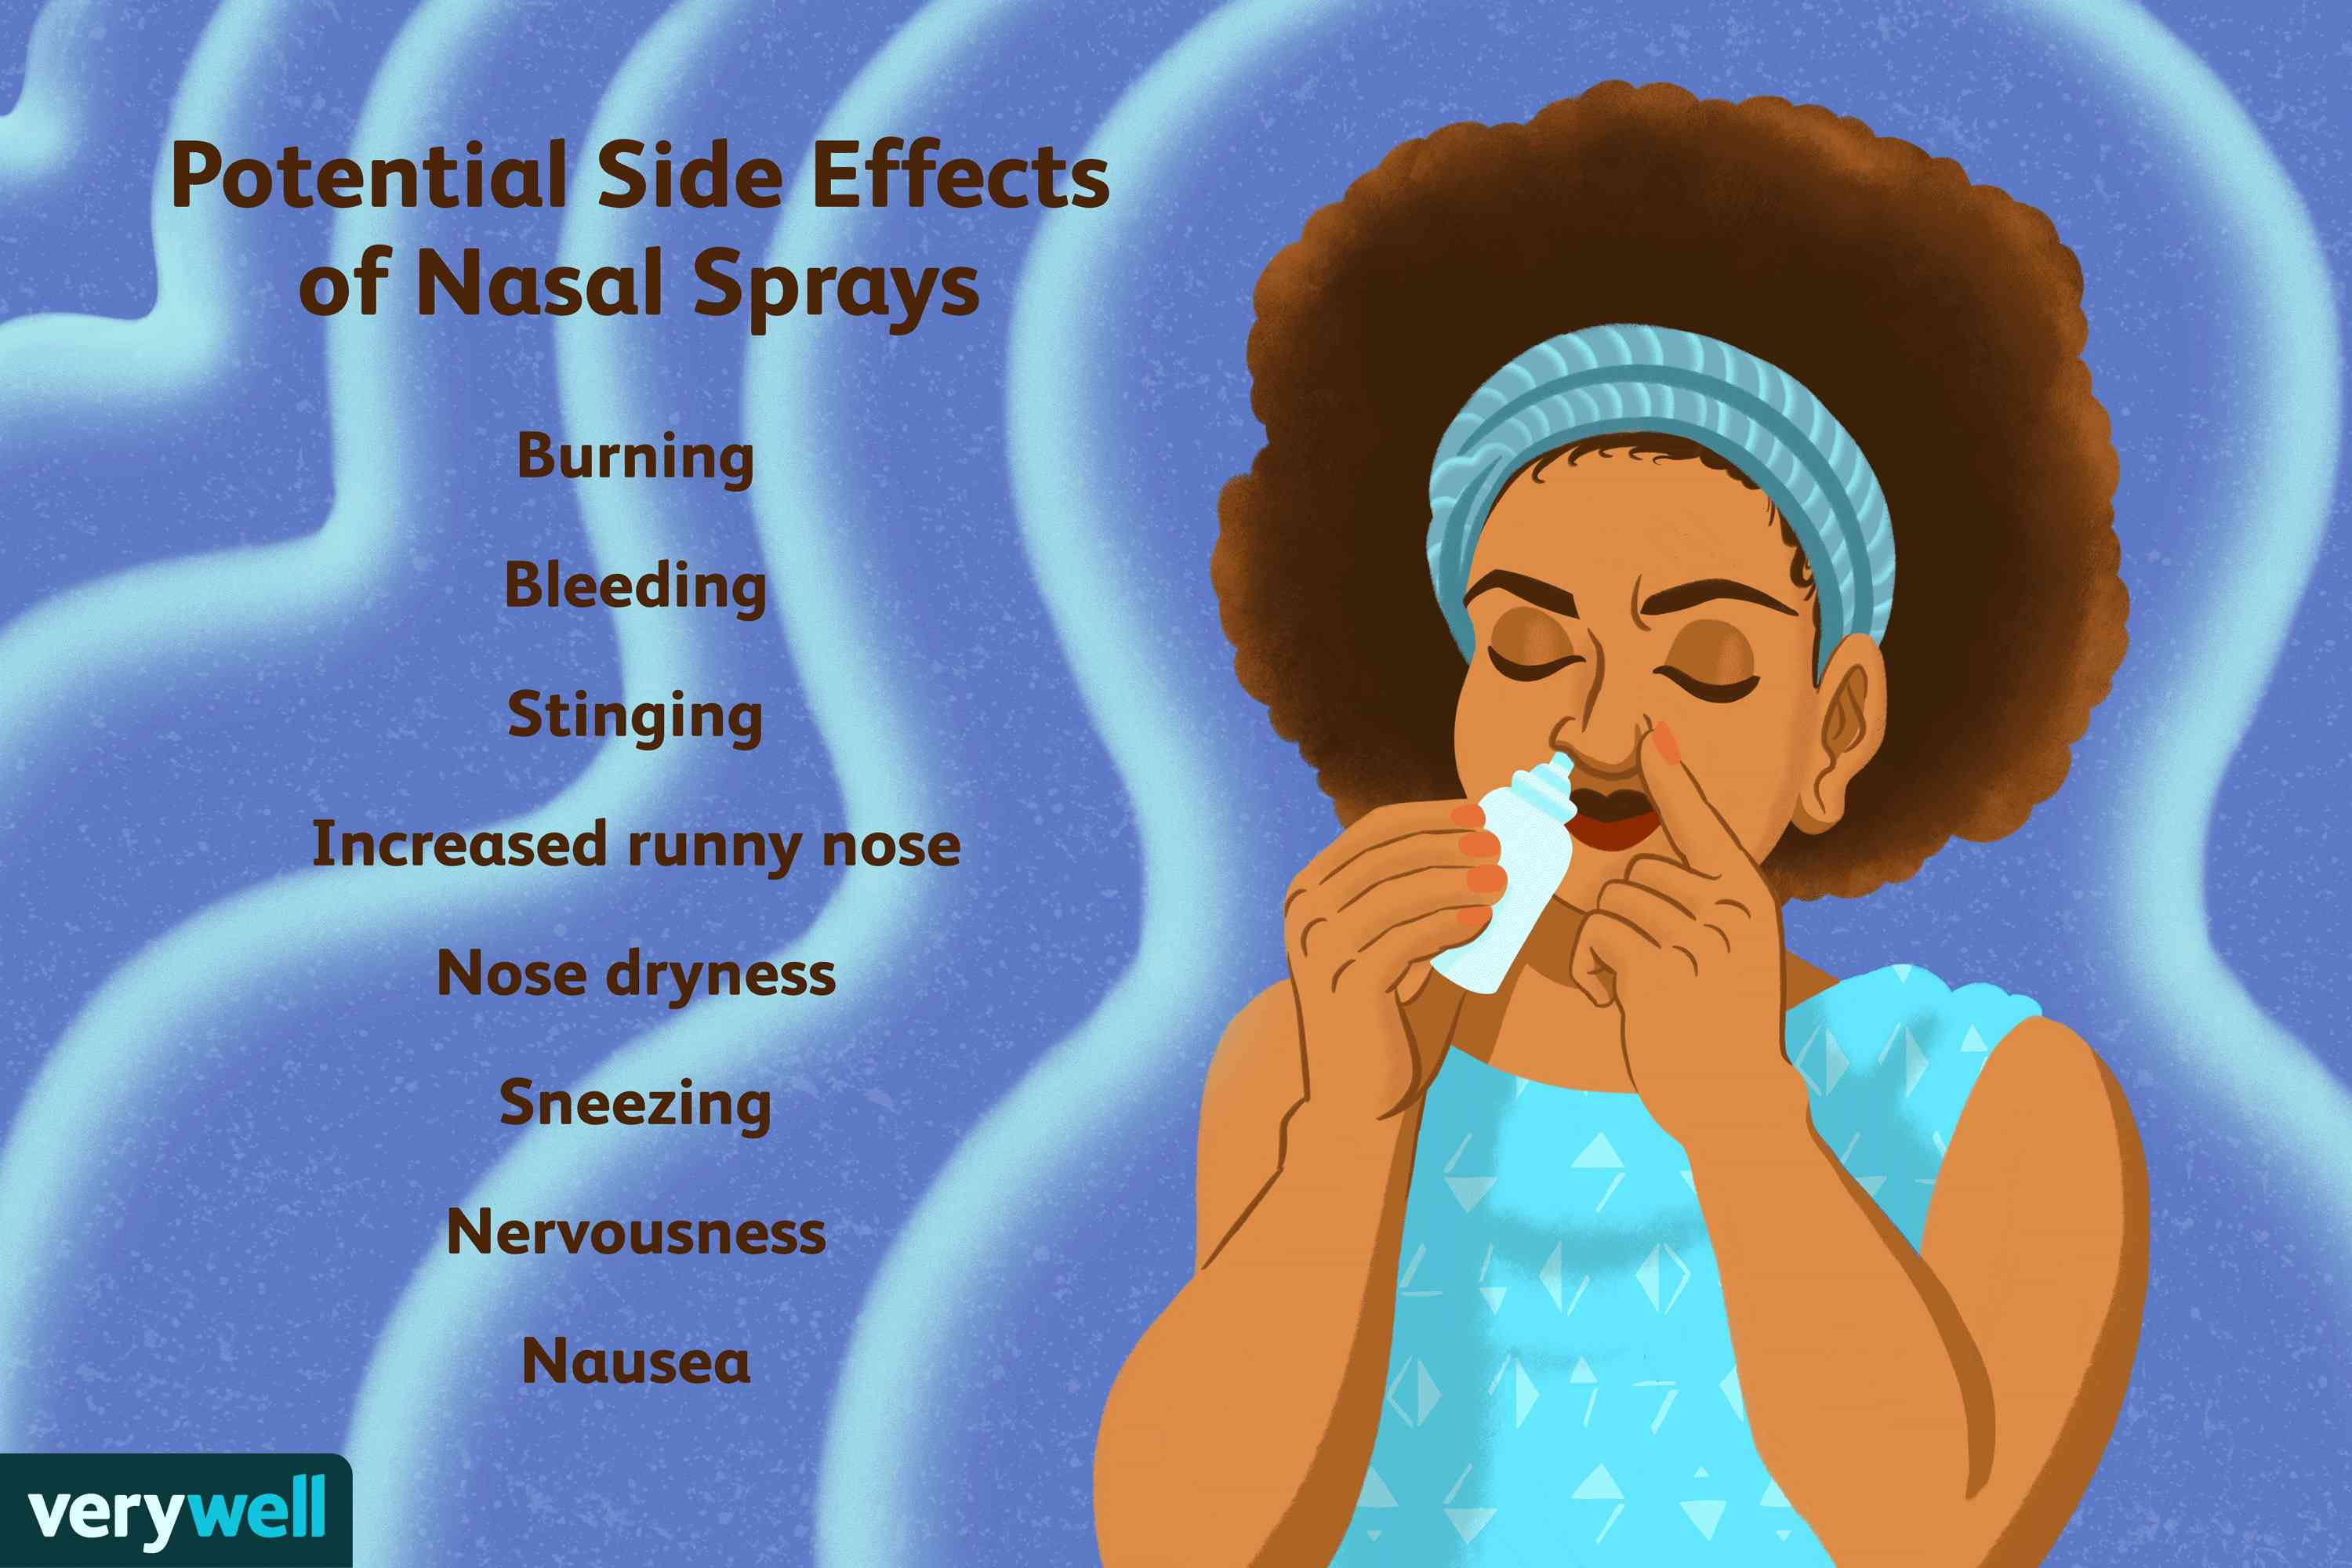 Potential Side Effects of Nasal Sprays